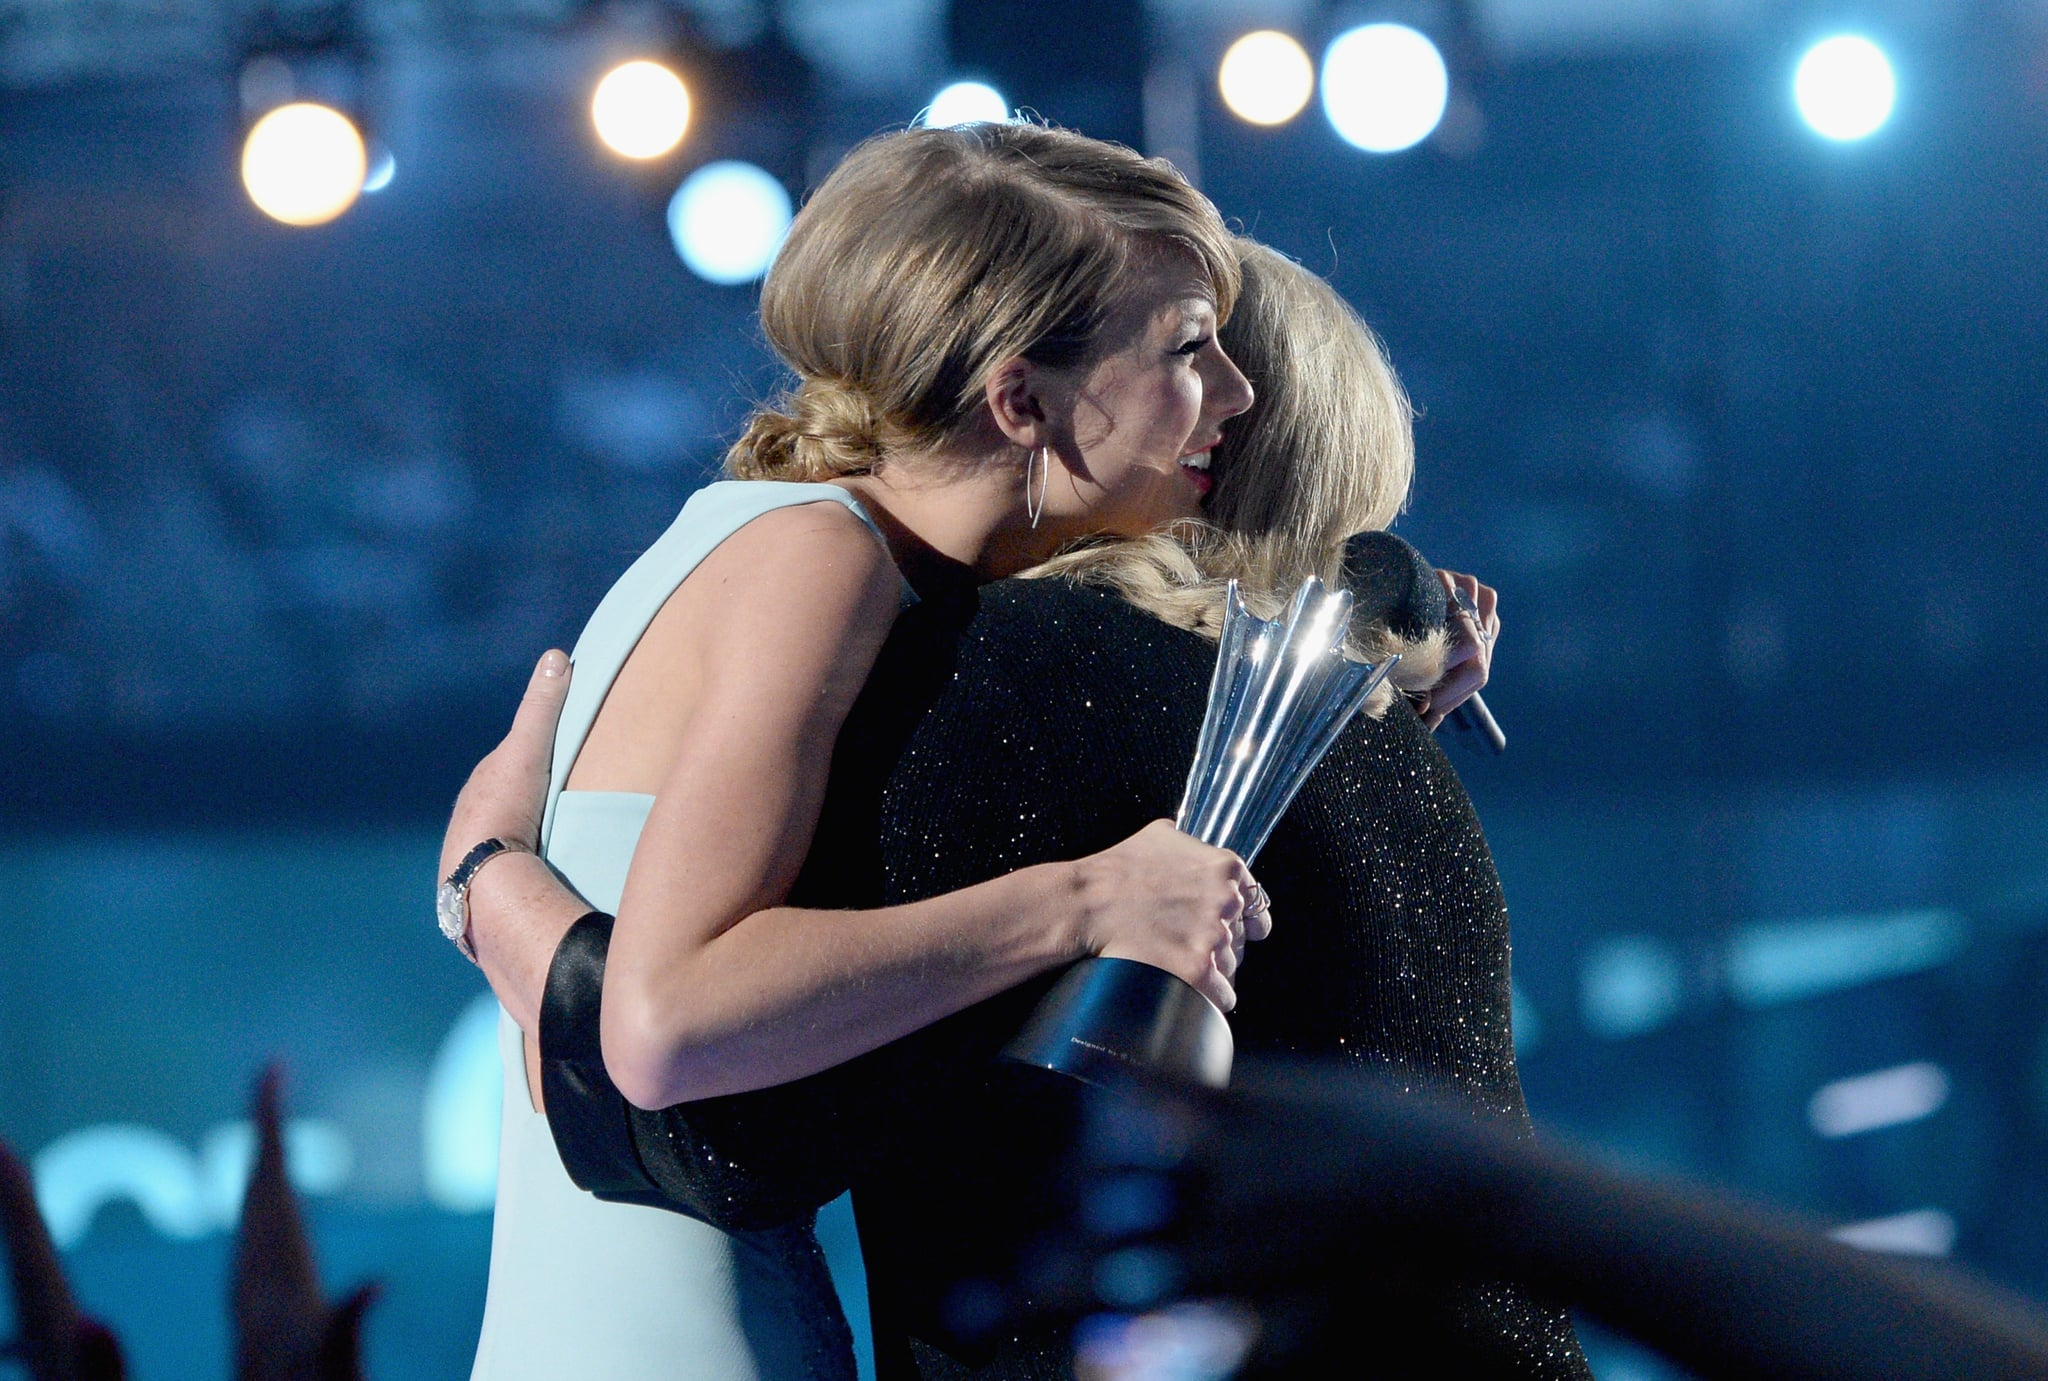 ARLINGTON, TX - APRIL 19:  Honoree Taylor Swift (L) accepts the Milestone Award from Andrea Finlay onstage during the 50th Academy of Country Music Awards at AT&T Stadium on April 19, 2015 in Arlington, Texas.  (Photo by Mike Windle/ACM2015/Getty Images for dcp)